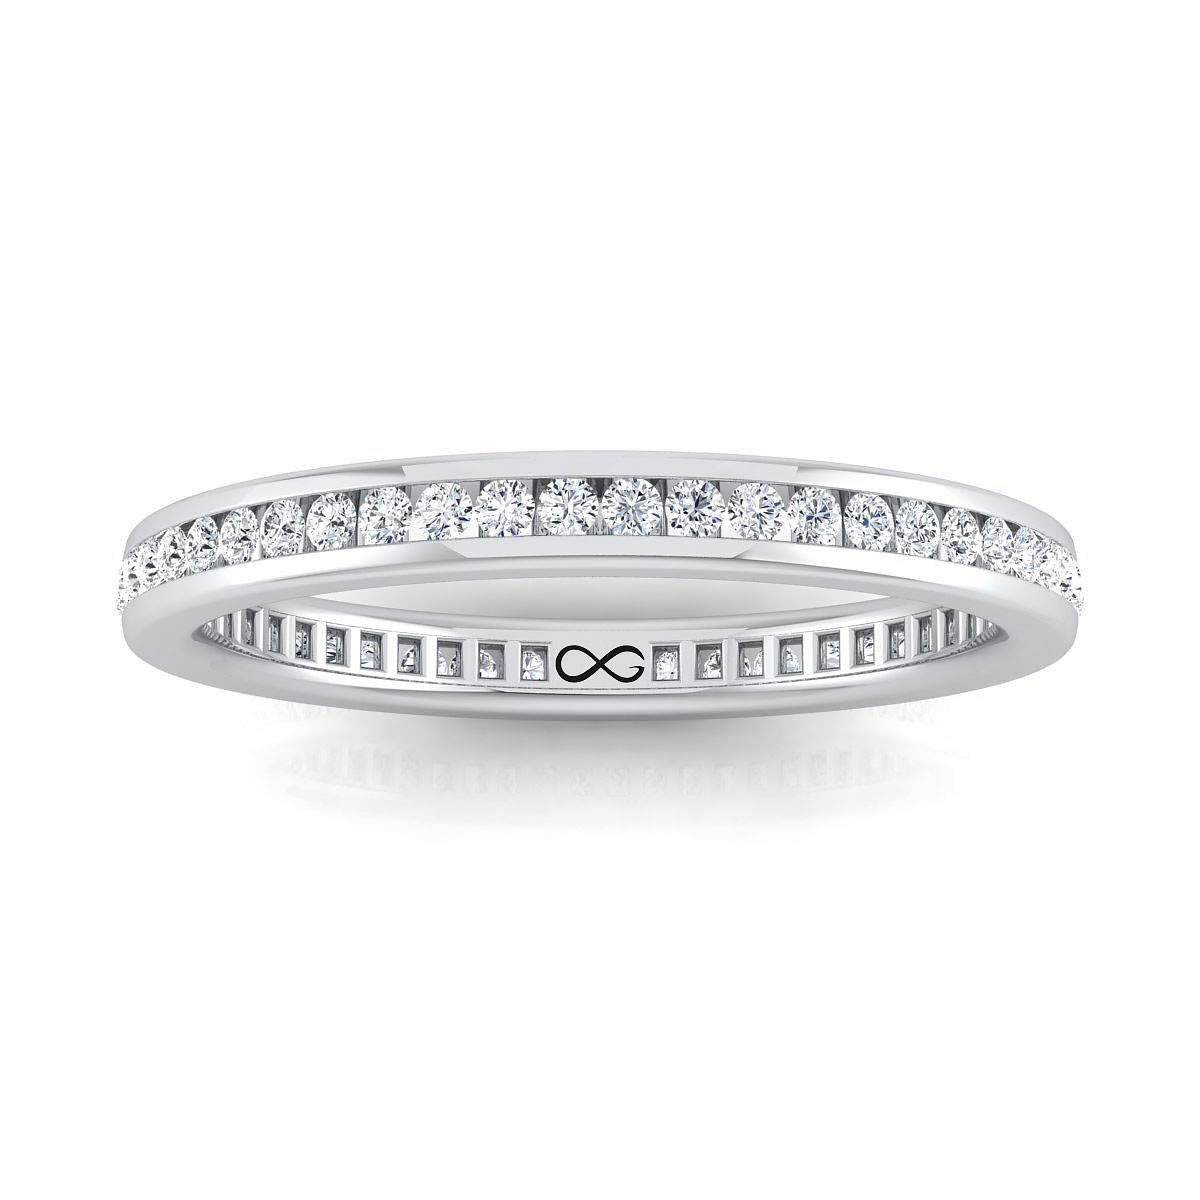 STARS IN CHANNEL SET ETERNITY BAND (0.67ct)